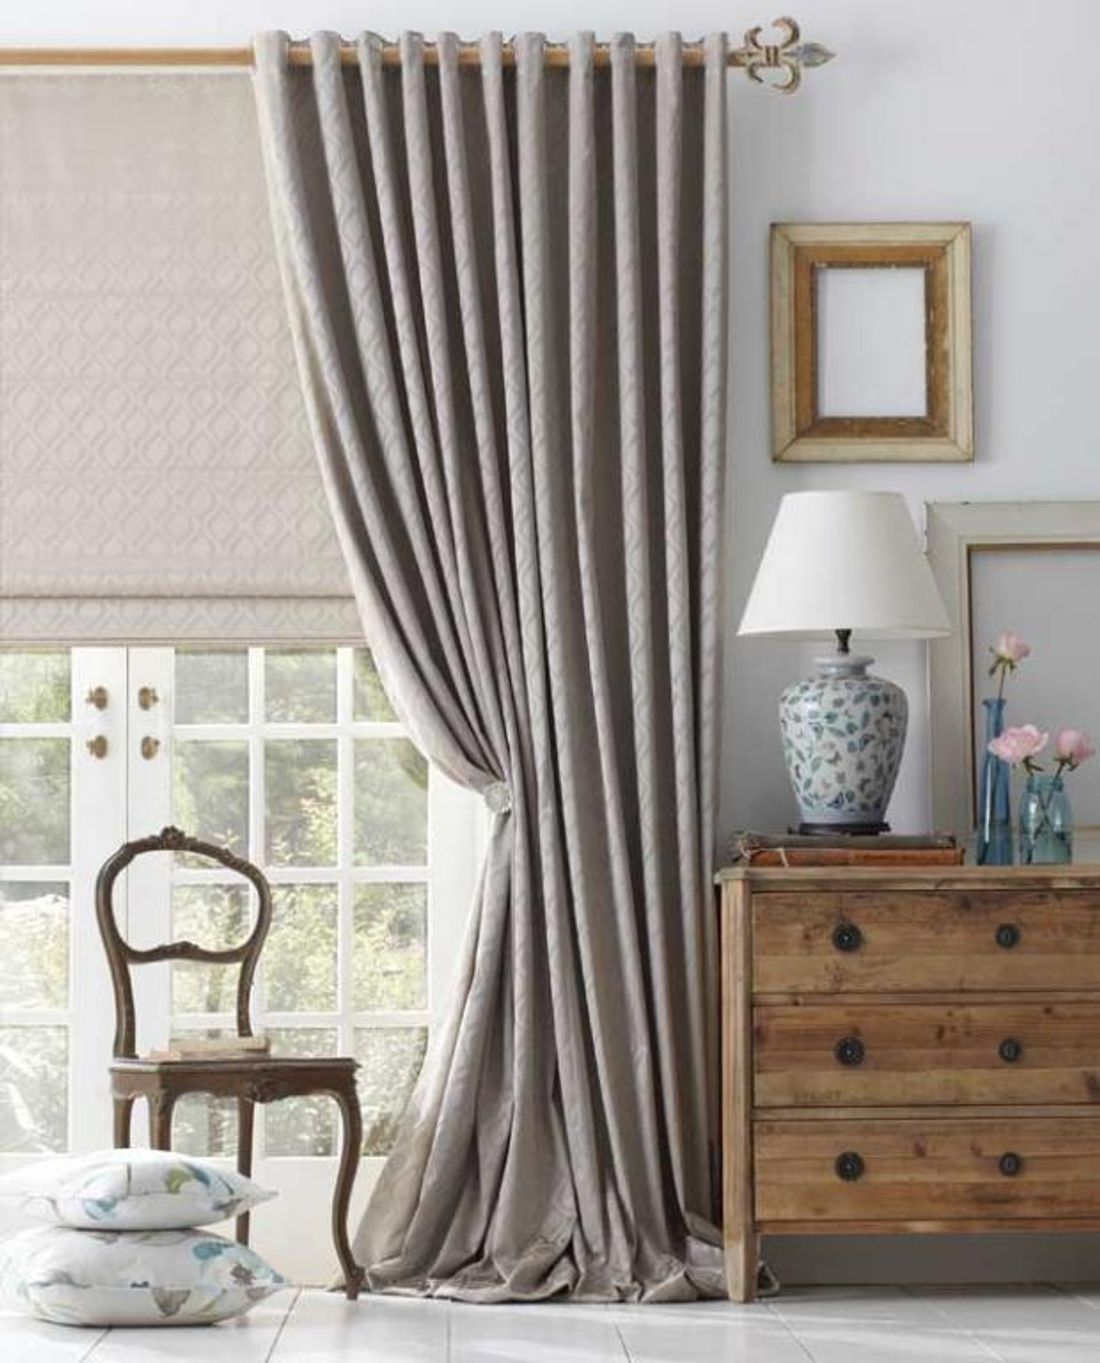 if you install pelmets over your curtains they will become even more energy efficient pelmets help stop cold air from entering the room